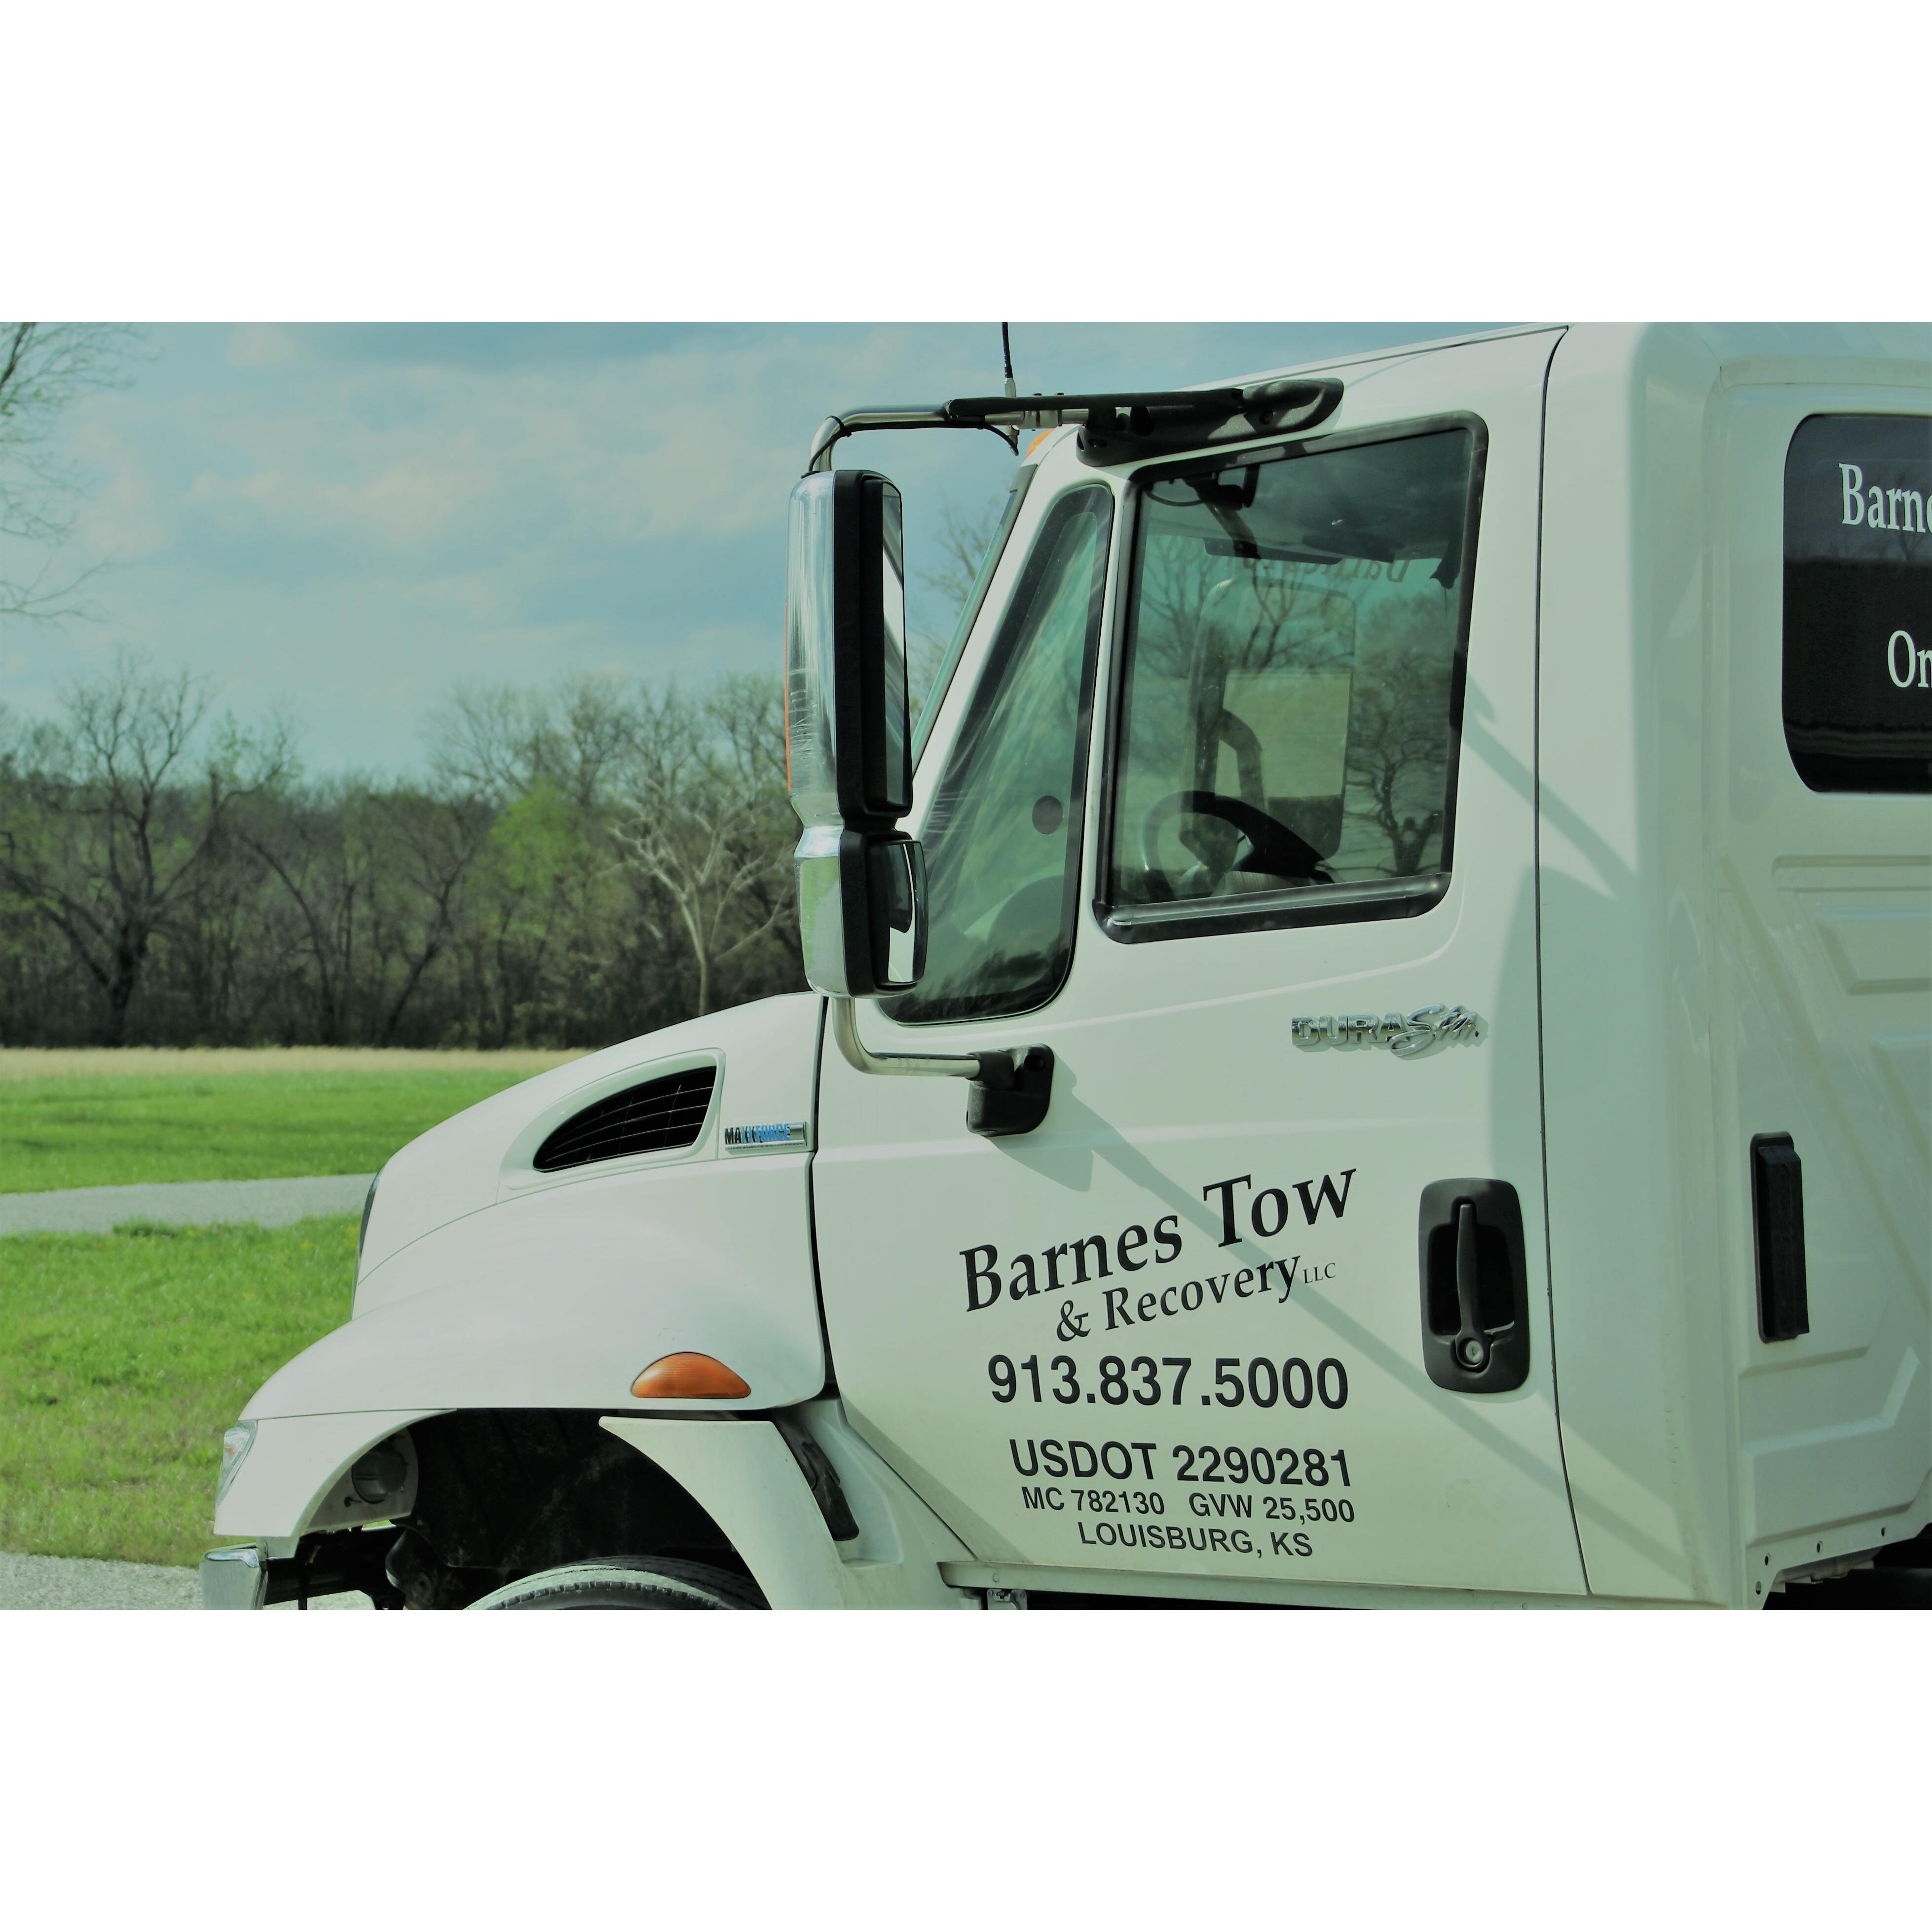 Barnes Tow & Recovery LLC